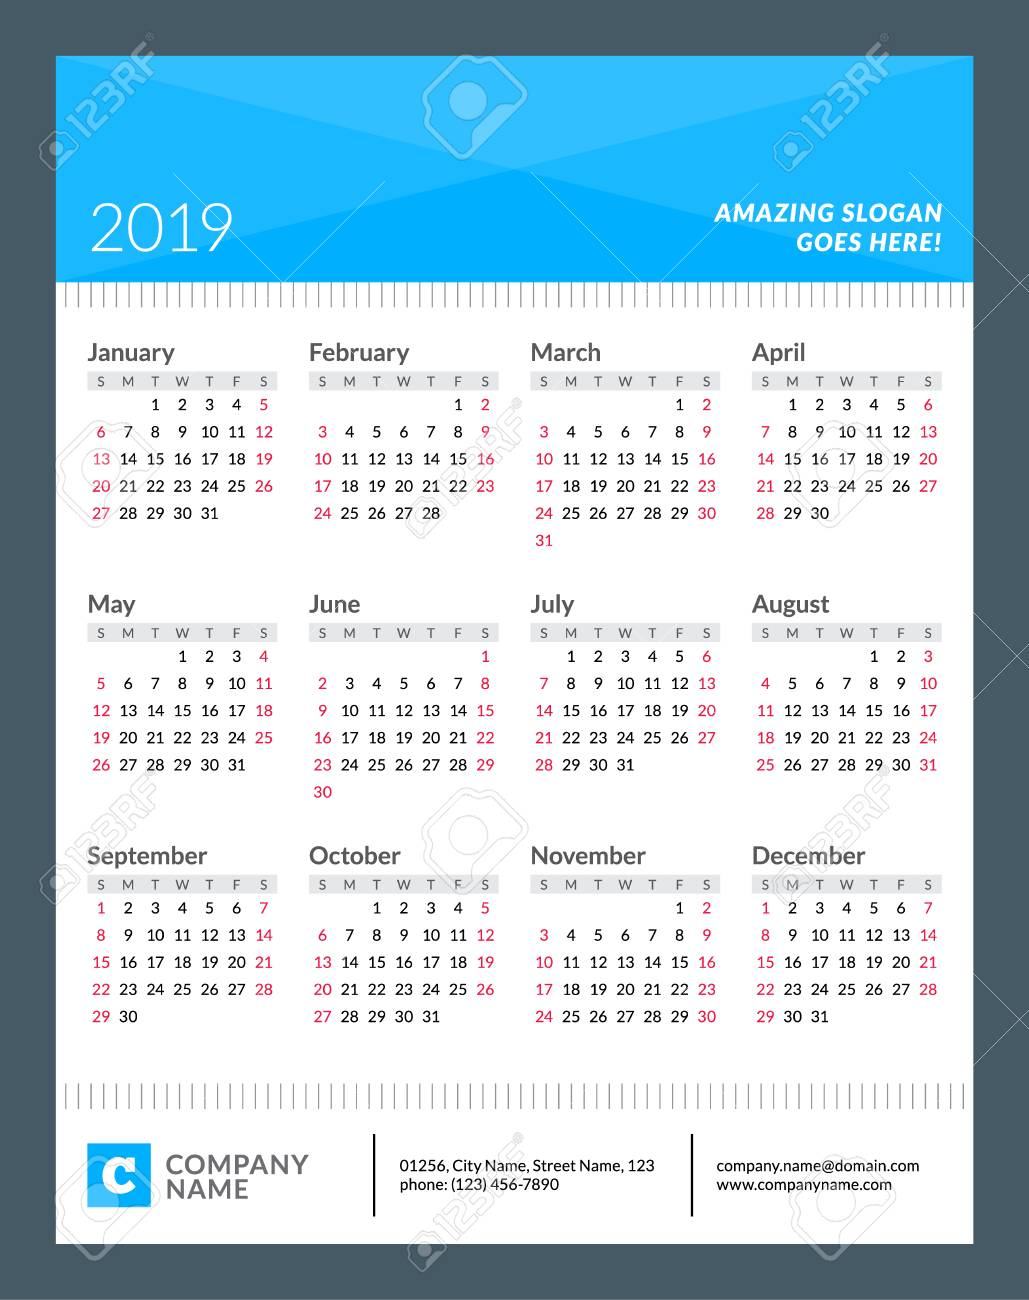 Calendar Poster For 2019 Year Week Starts On Sunday 12 Months Royalty Free Cliparts Vectors And Stock Illustration Image 82084197